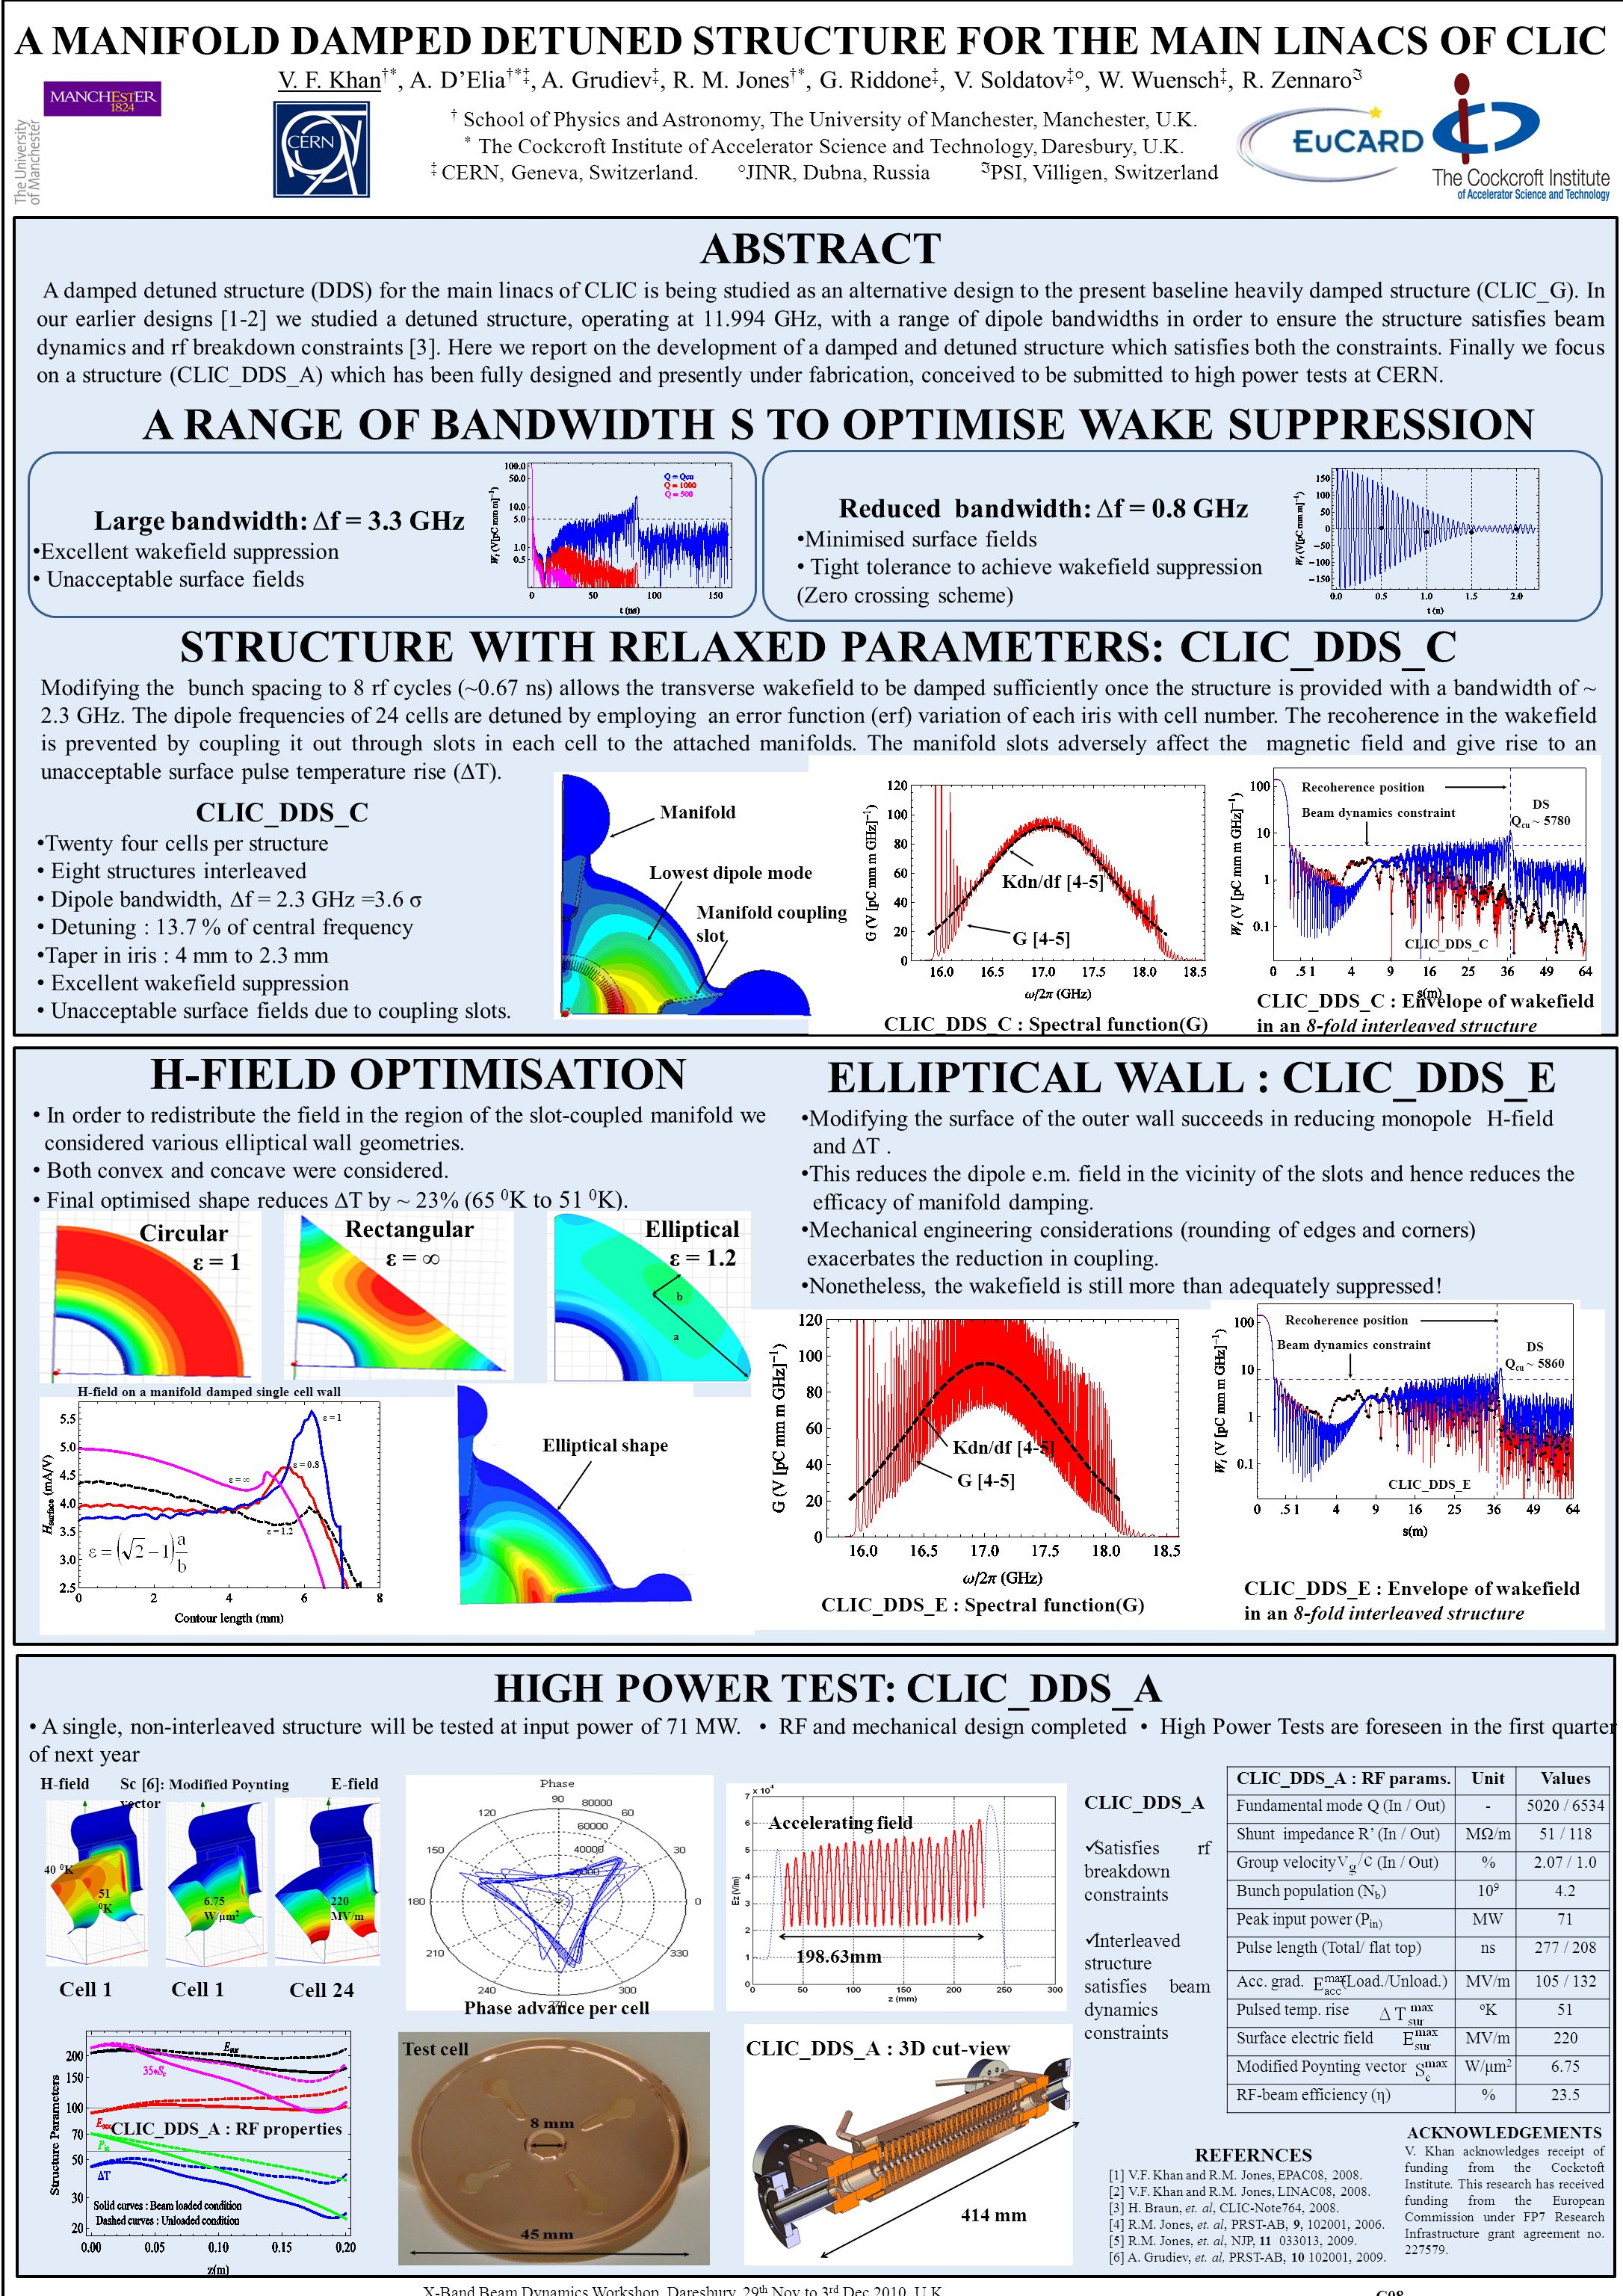 ABSTRACT A damped detuned structure (DDS) for the main linacs of CLIC is being studied as an alternative design to the present baseline heavily damped